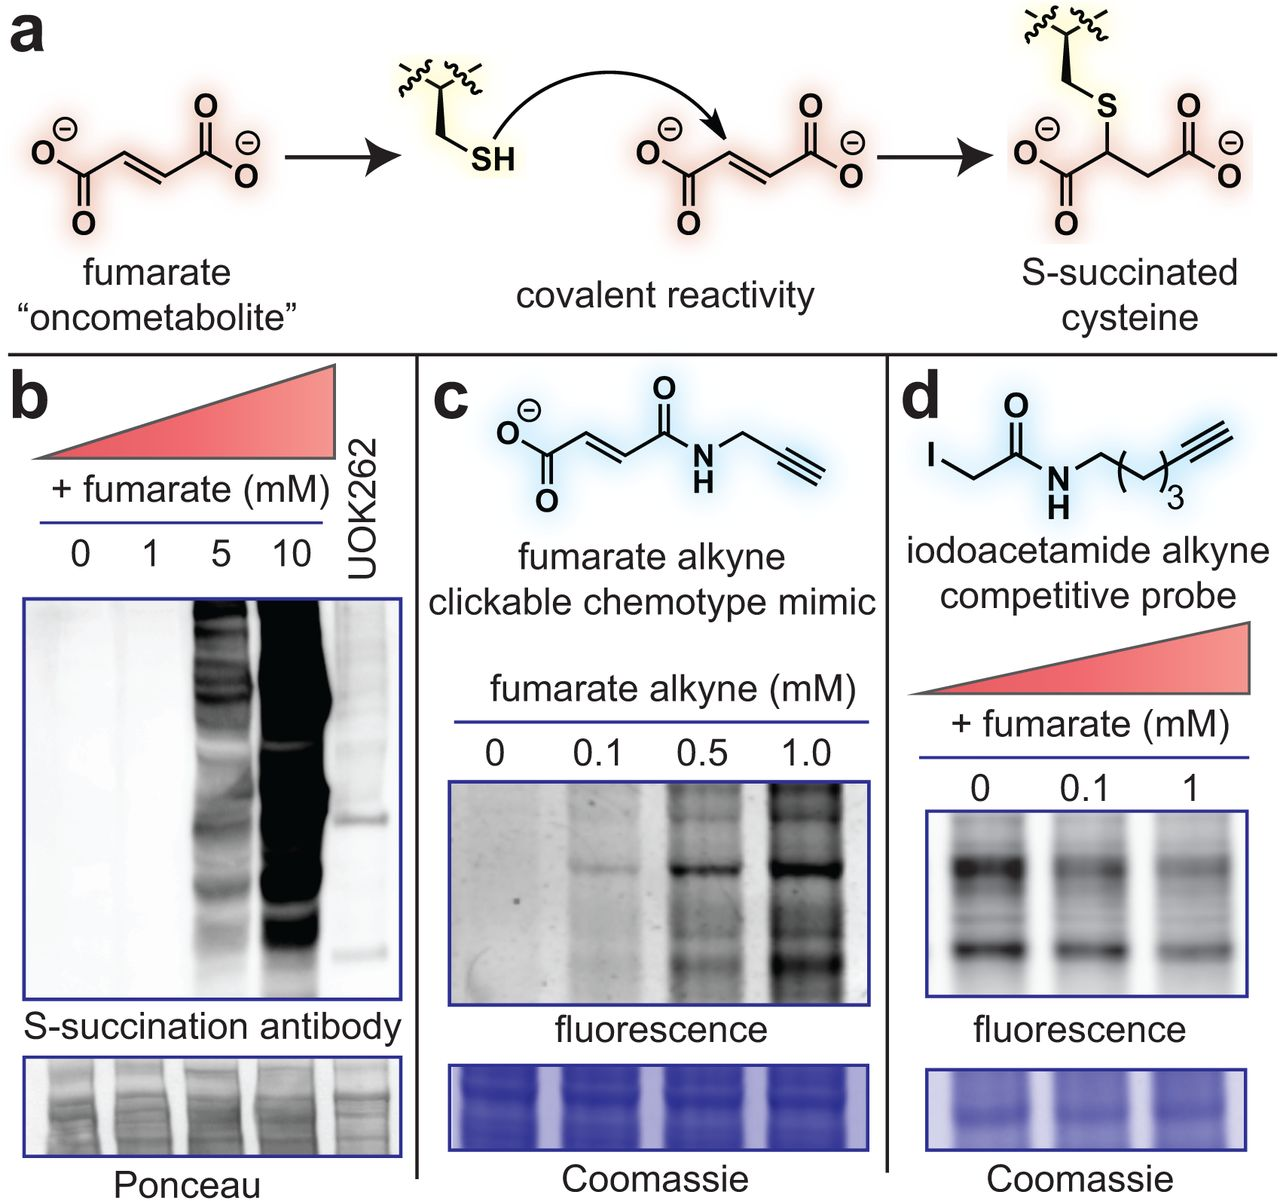 A Chemoproteomic Portrait Of The Oncometabolite Fumarate